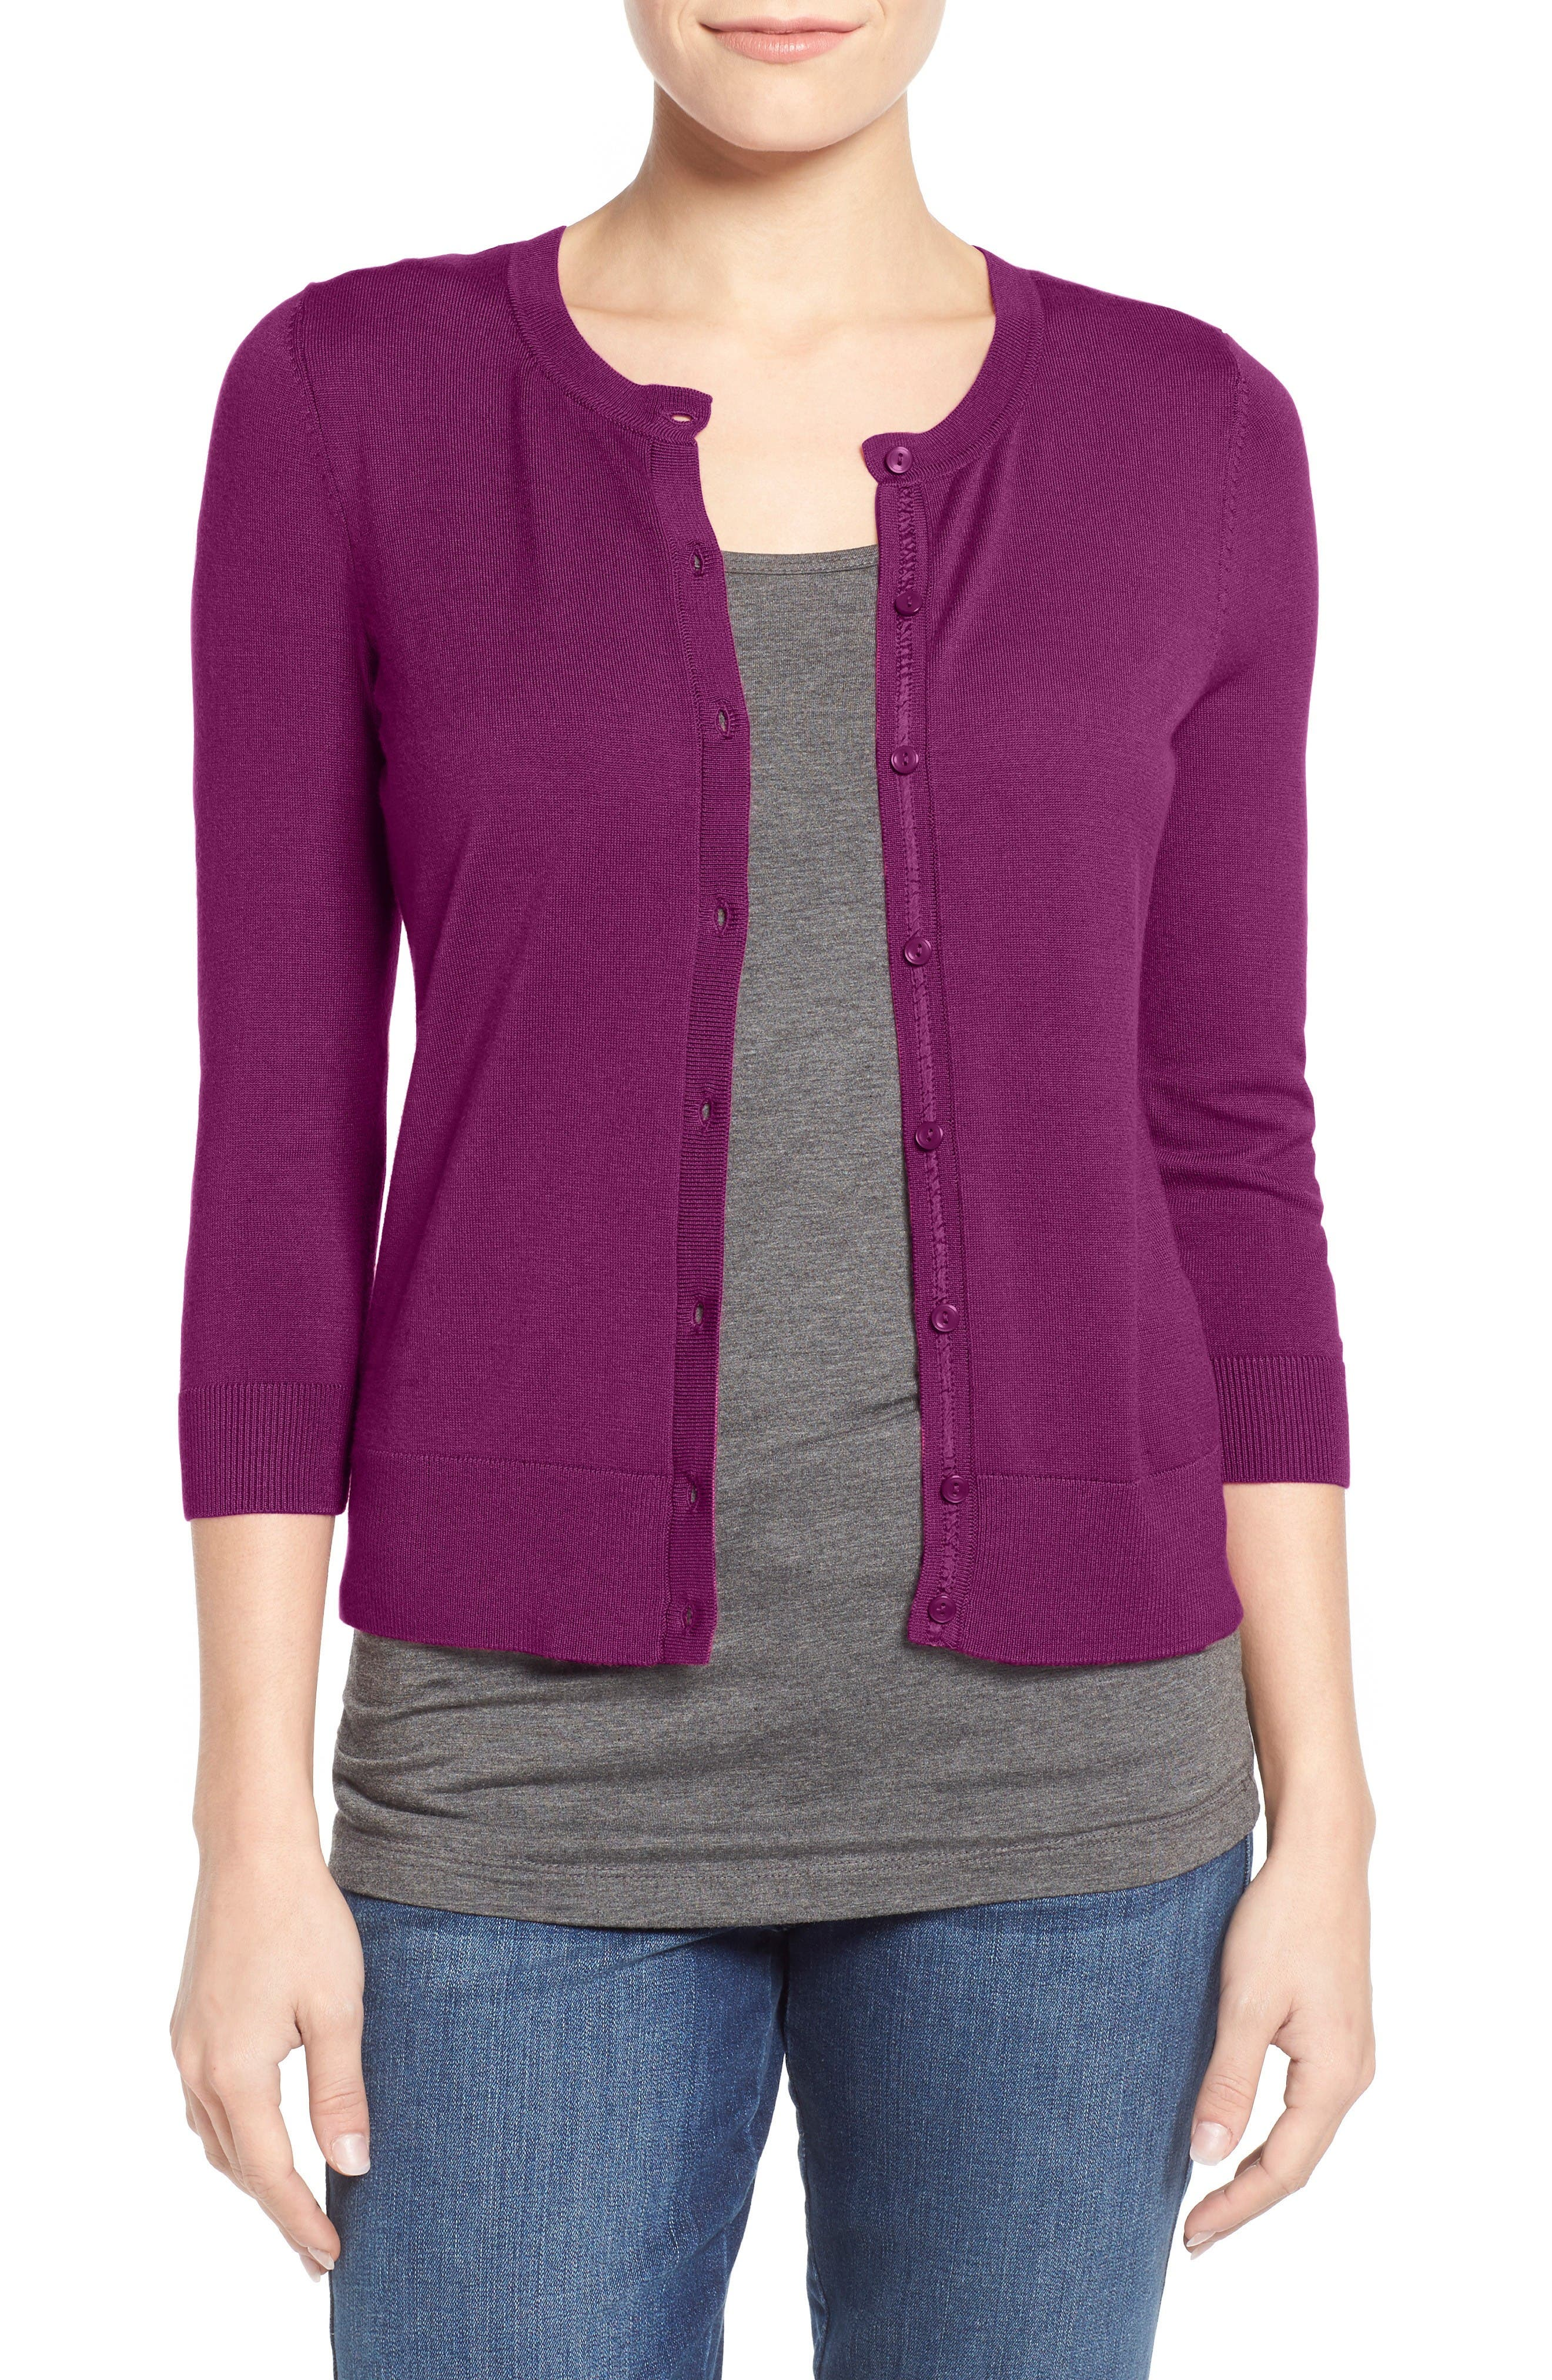 Main Image - Halogen® Three Quarter Sleeve Cardigan (Regular & Petite)